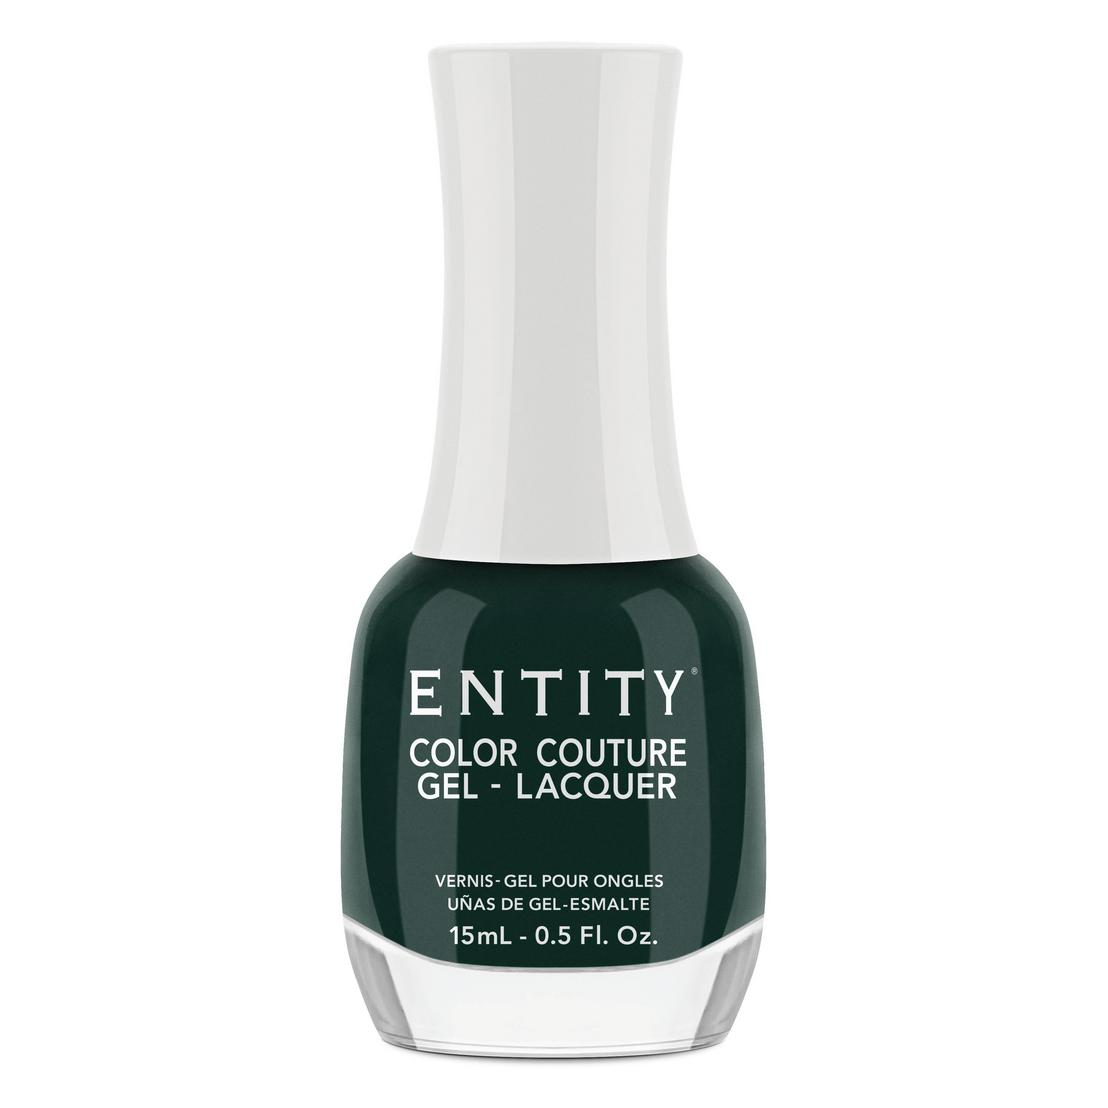 Entity Lacquer #Layered In Luxure